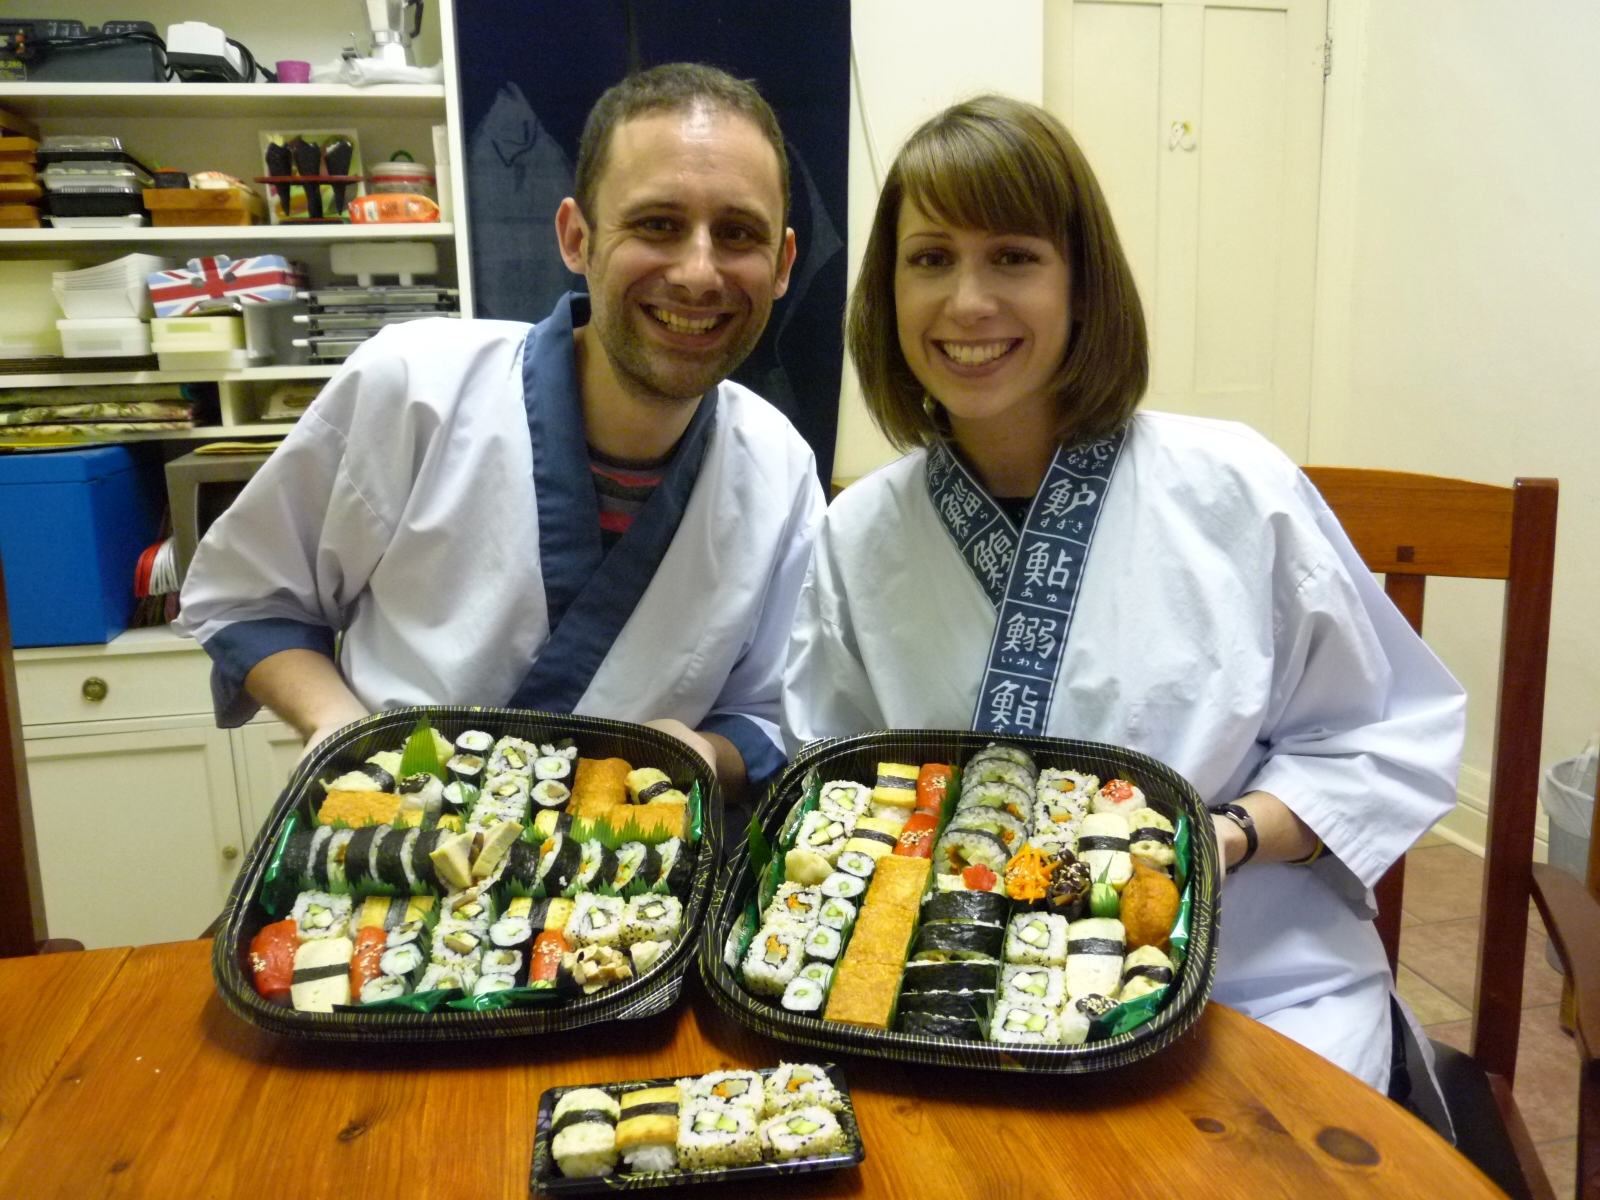 """""""From start to finish, the Vegetarian sushi course with Nari and Yoshie  was informative, well-organised and fun. The kitchen choreography was  impressive, with everything ready to go at the start of each activity.  This meant that although it was a relaxed pace, we still managed to make  around eight different types of sushi! I still can't believe quite how  tasty the sushi omlette was, an entirely different taste experience to  any sushi I've bought! I would recommend this course to anyone."""""""